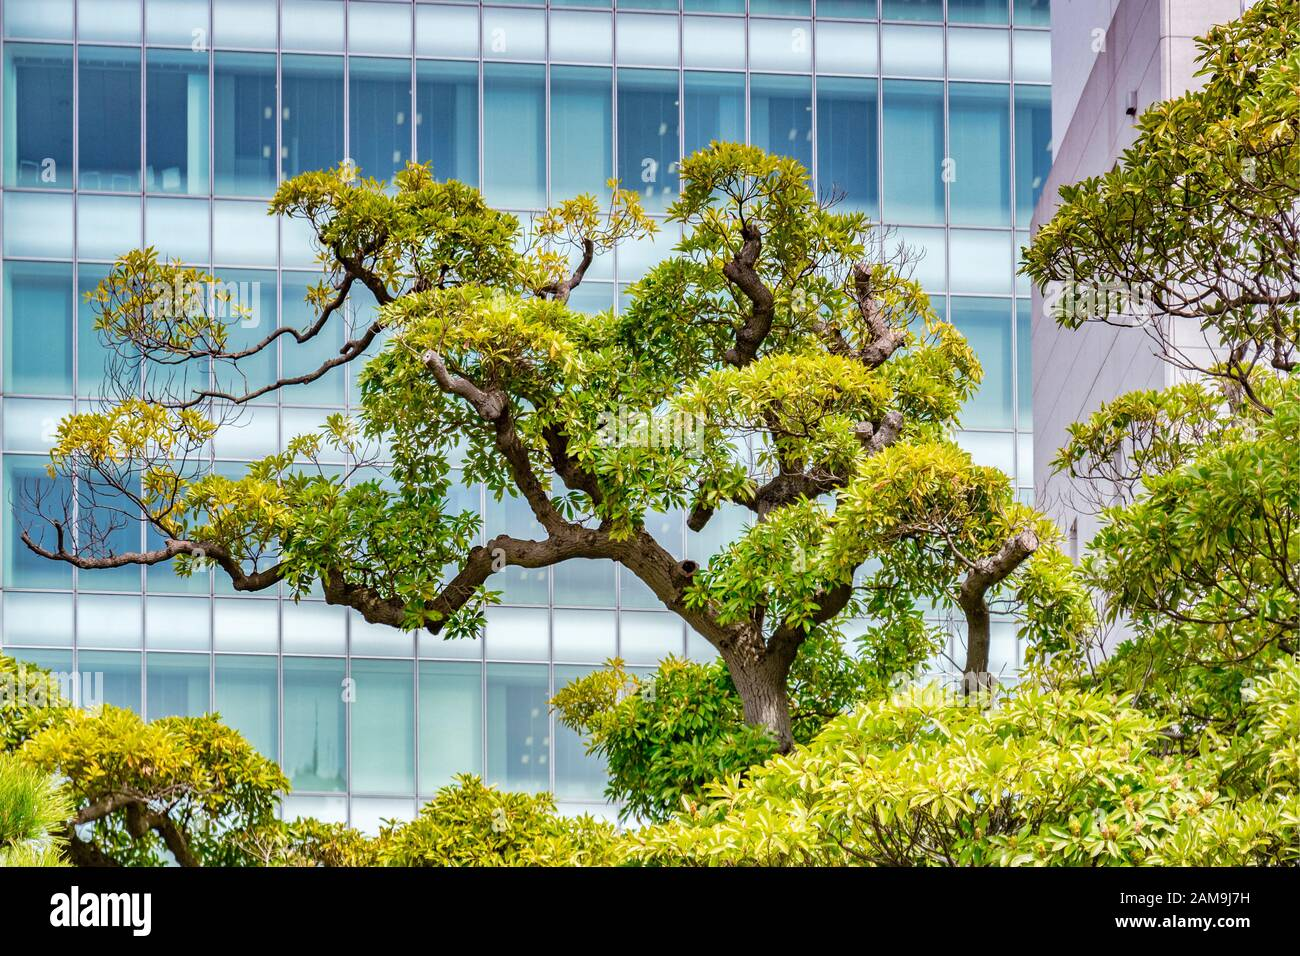 5 April 2019: Tokyo, Japan - Topiary tree in the centre of the city, with moderm high rise glass building behind it. Traditional and modern sights of Stock Photo